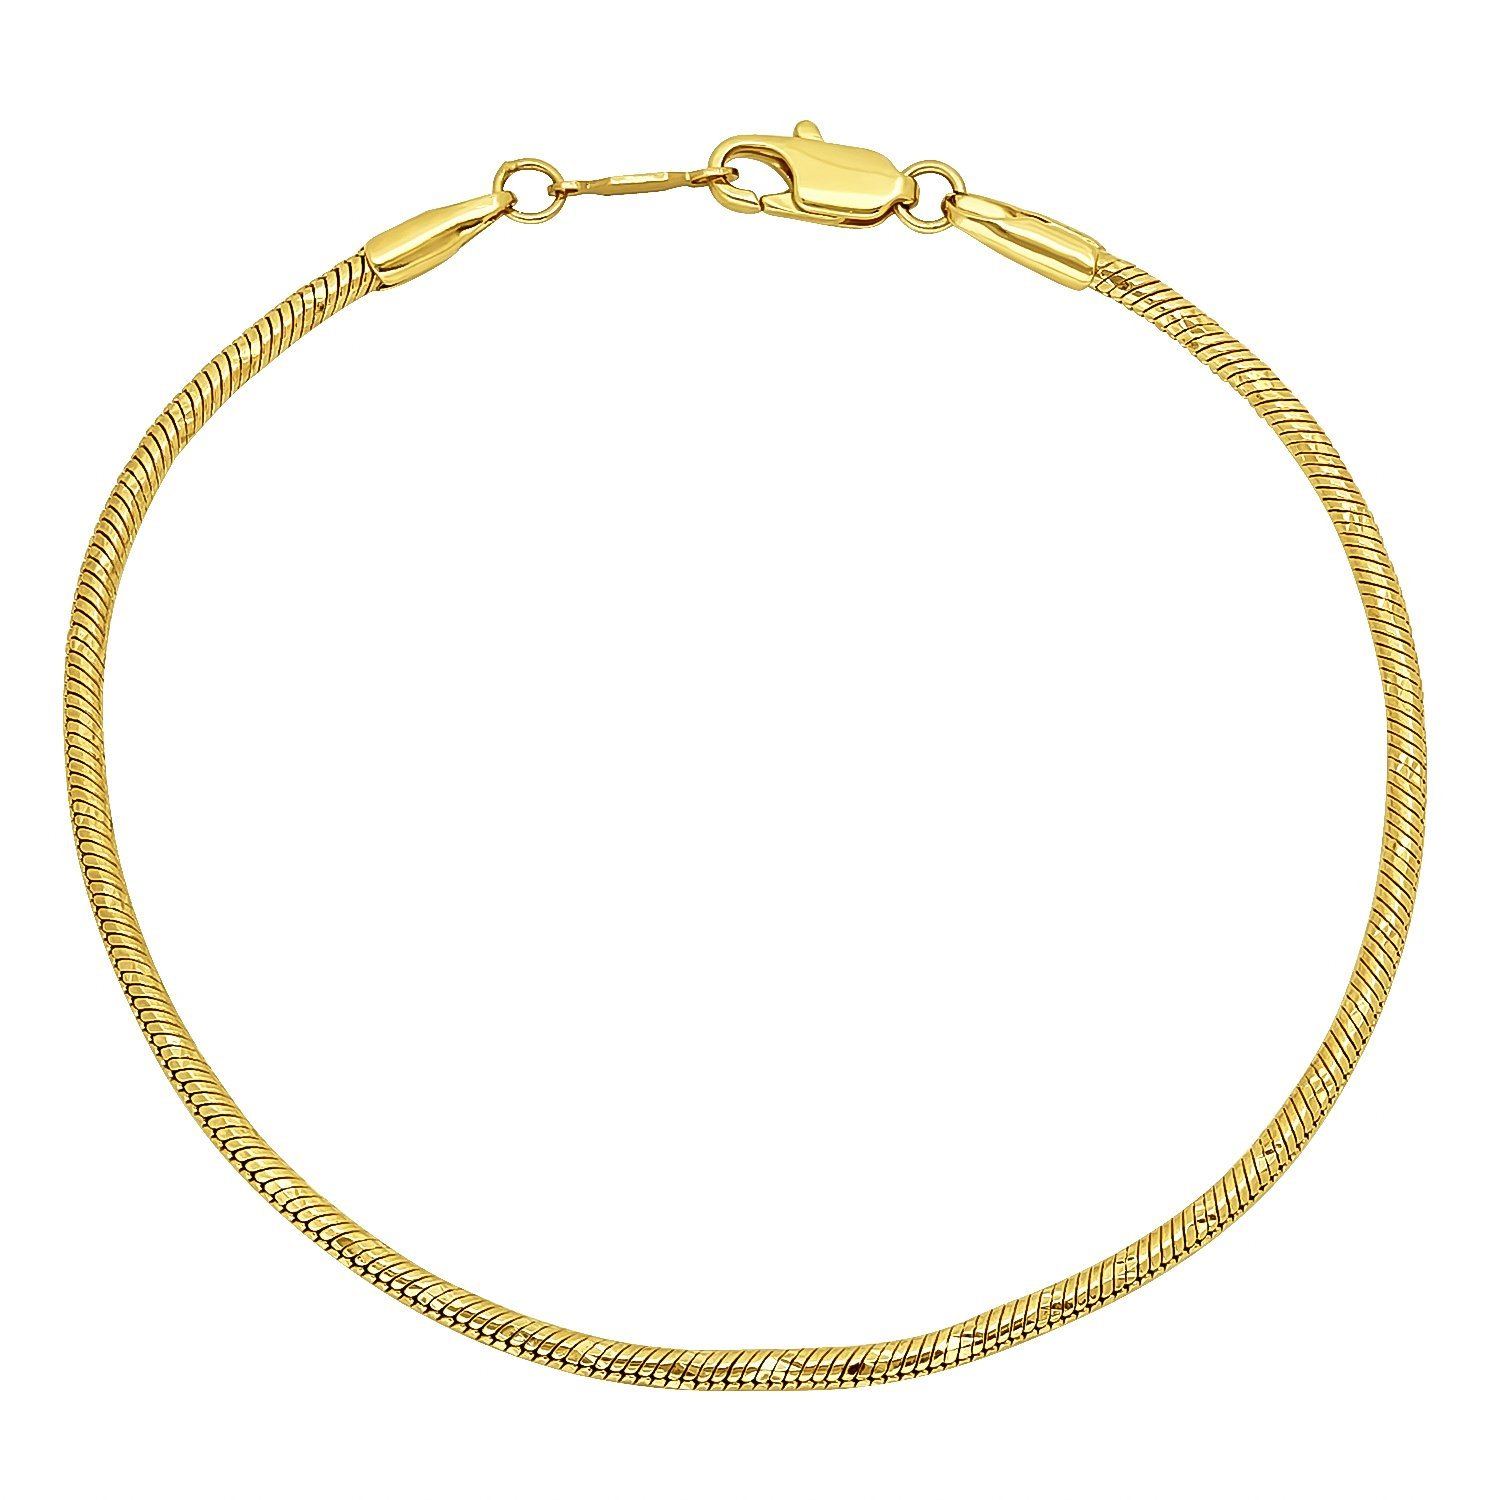 ba39e63523e02 The Bling Factory Small 14k Yellow Gold Plated 2mm Diamond-Cut Rounded  Snake Link Chain, 7